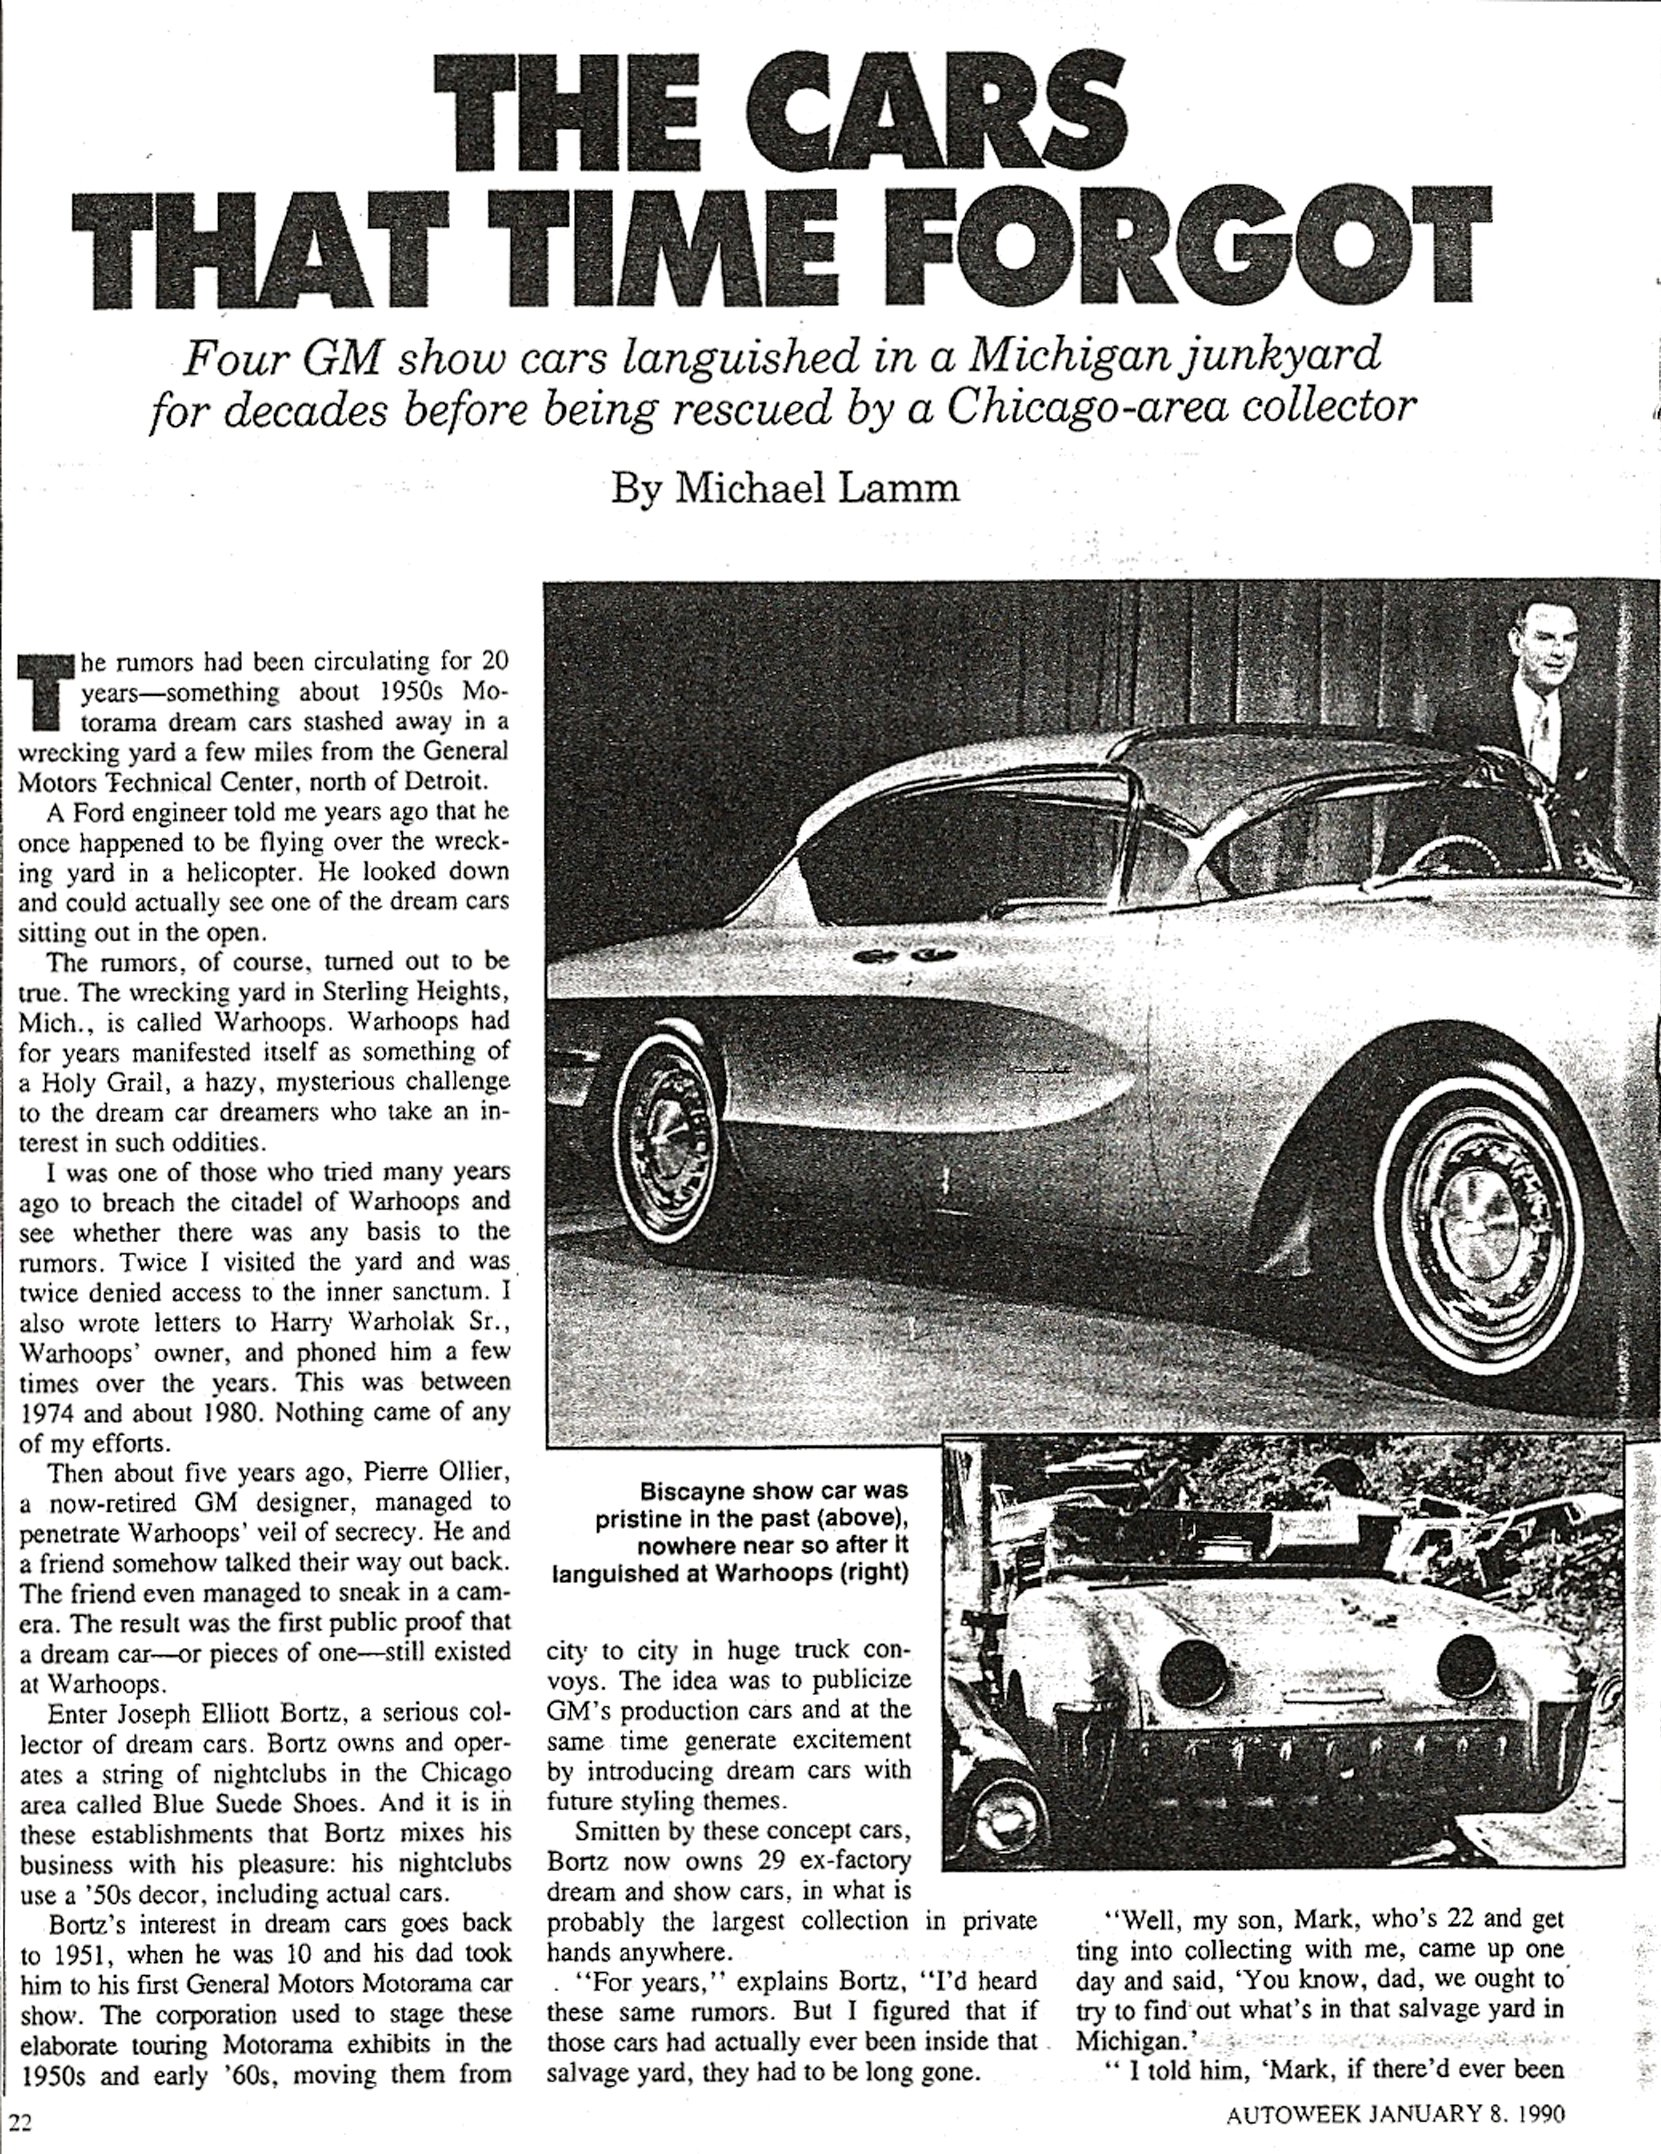 The Cars That Time Forgot by Michael Lamm